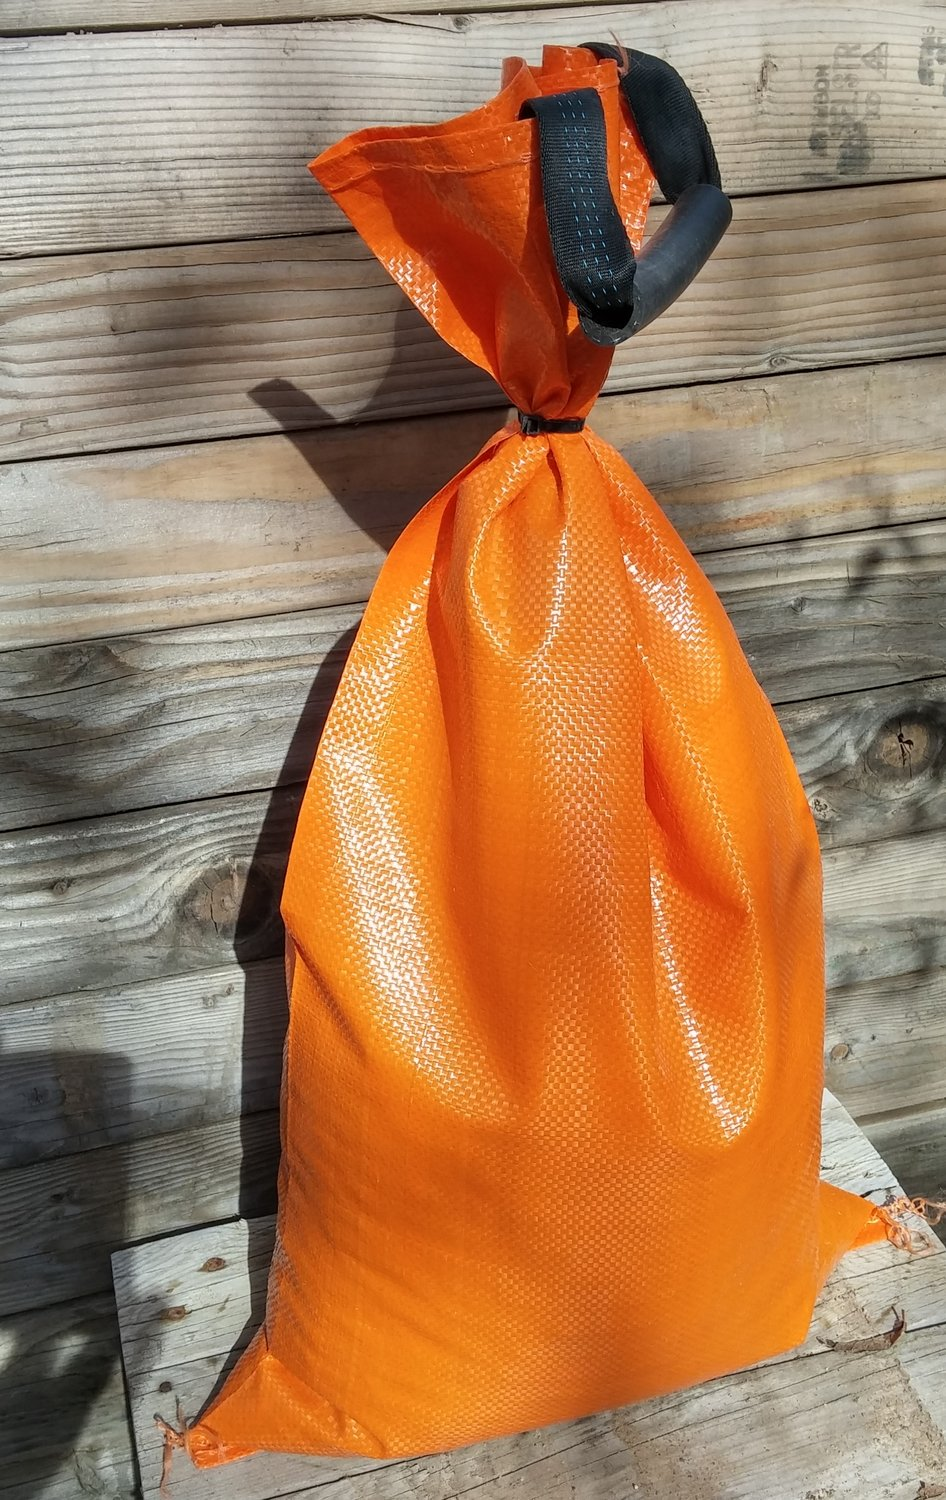 """Individual 4-year HD polypropylene sandbags, empty, 14""""x26"""" / four colors / 1-9 count, $2.00 each"""